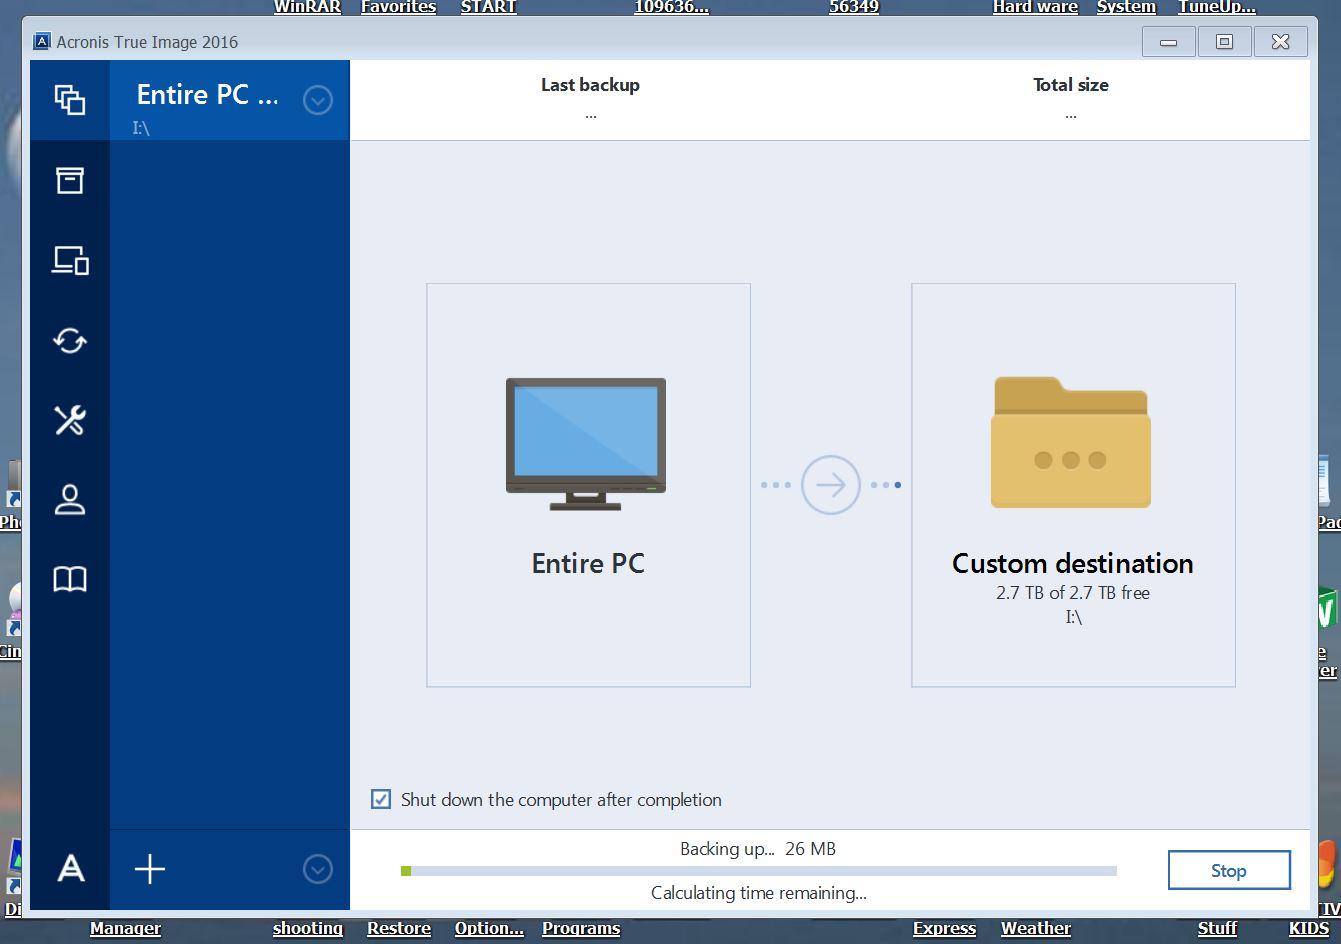 Discrepency in Backup Size | Acronis Forum